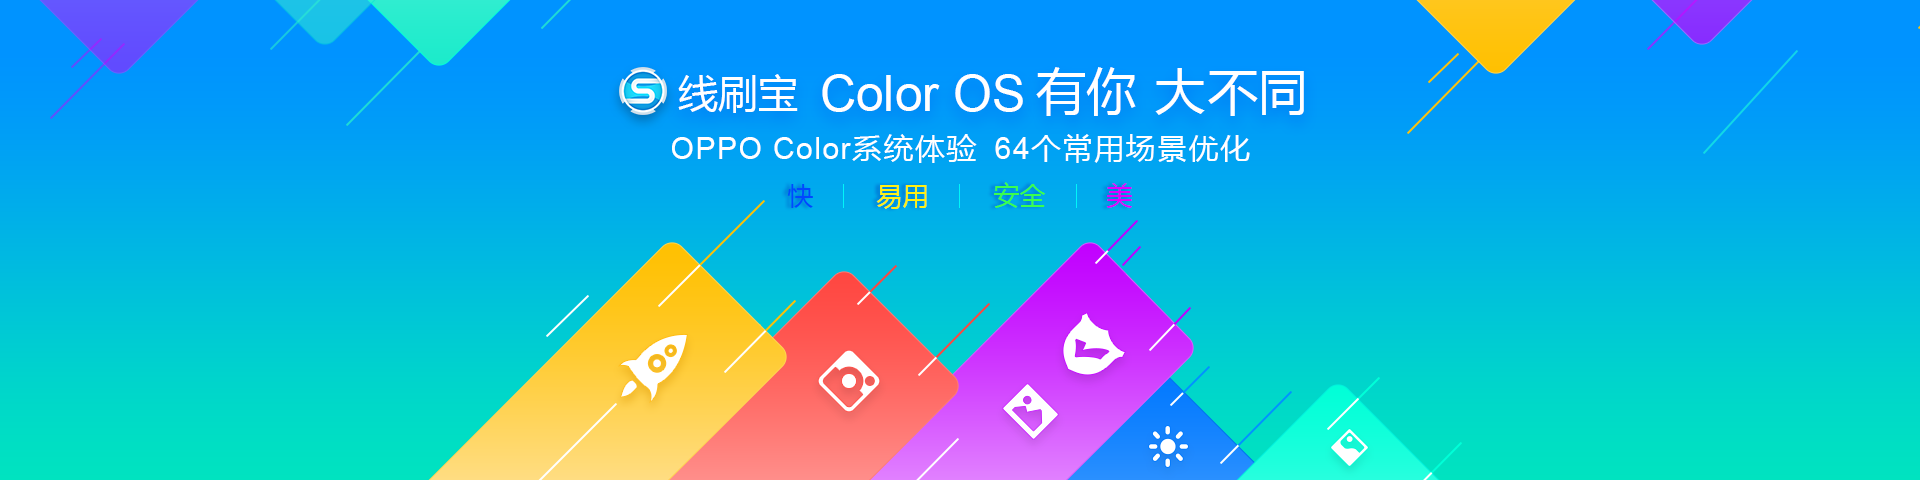 color os